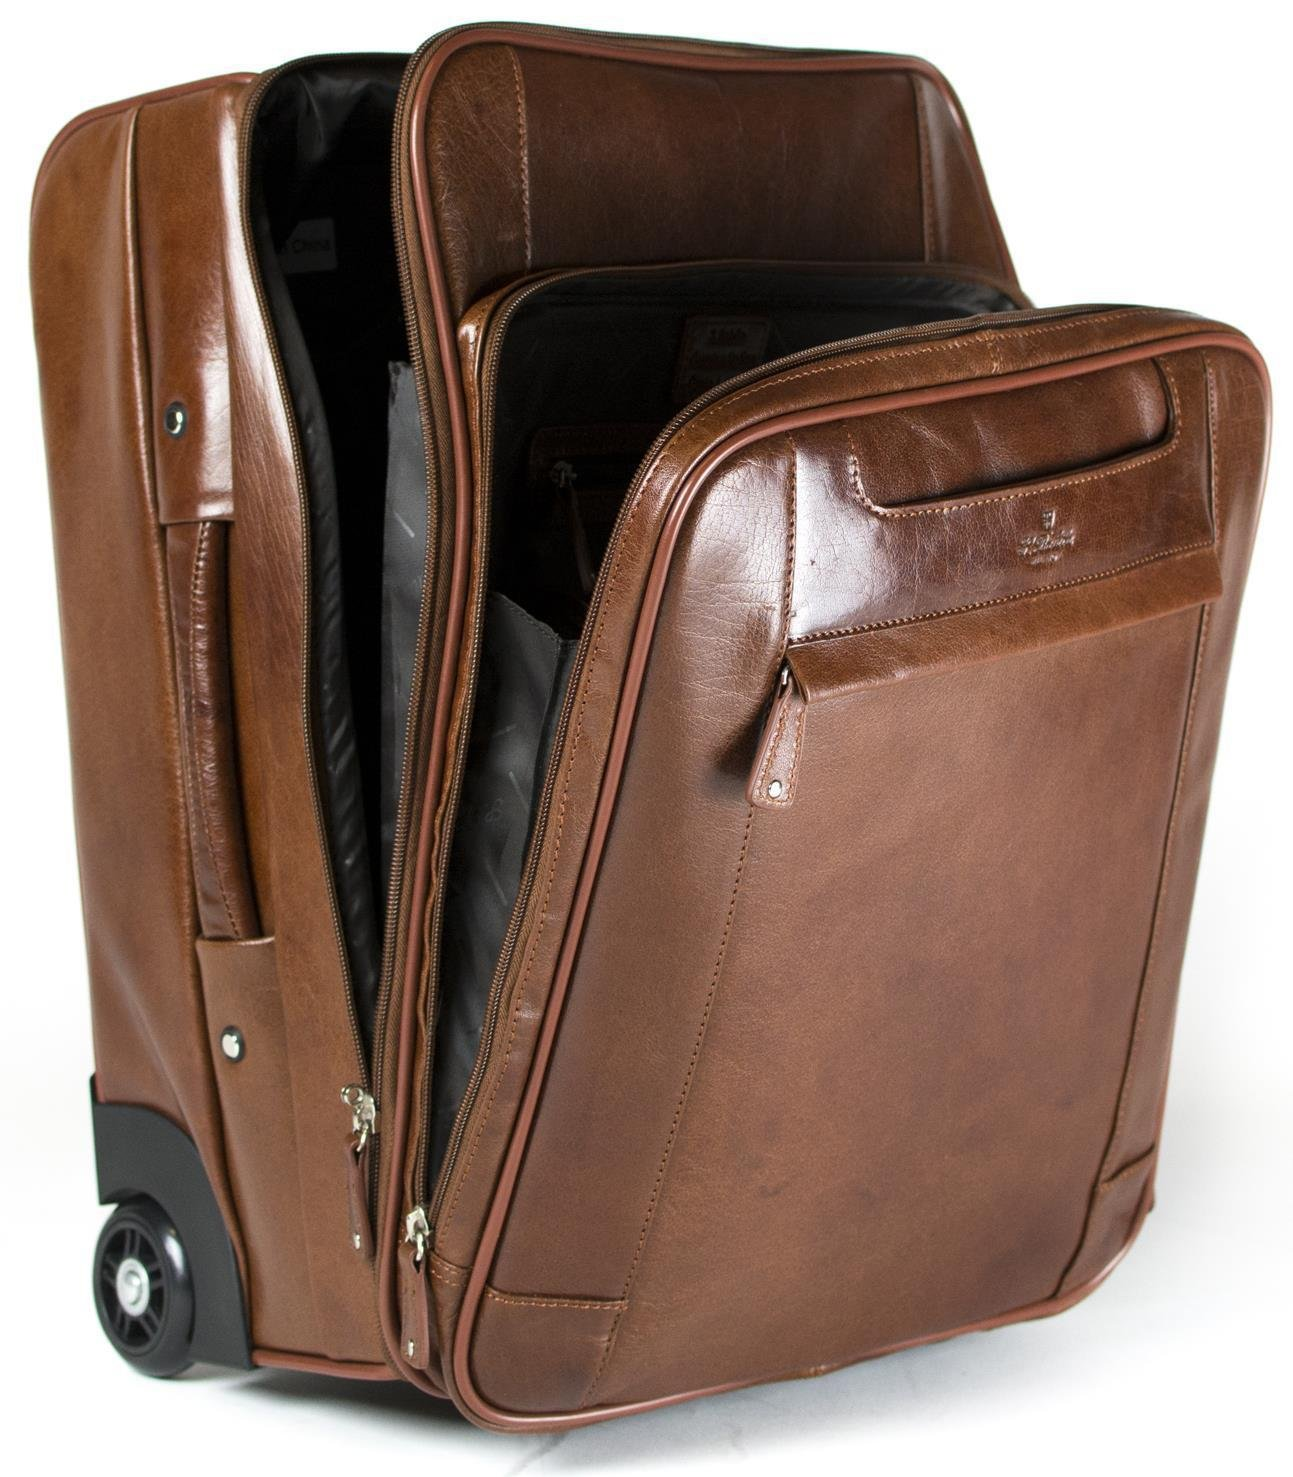 b9c7528d9687 Genuine Leather Laptop Trolley Bag- Fenix Toulouse Handball